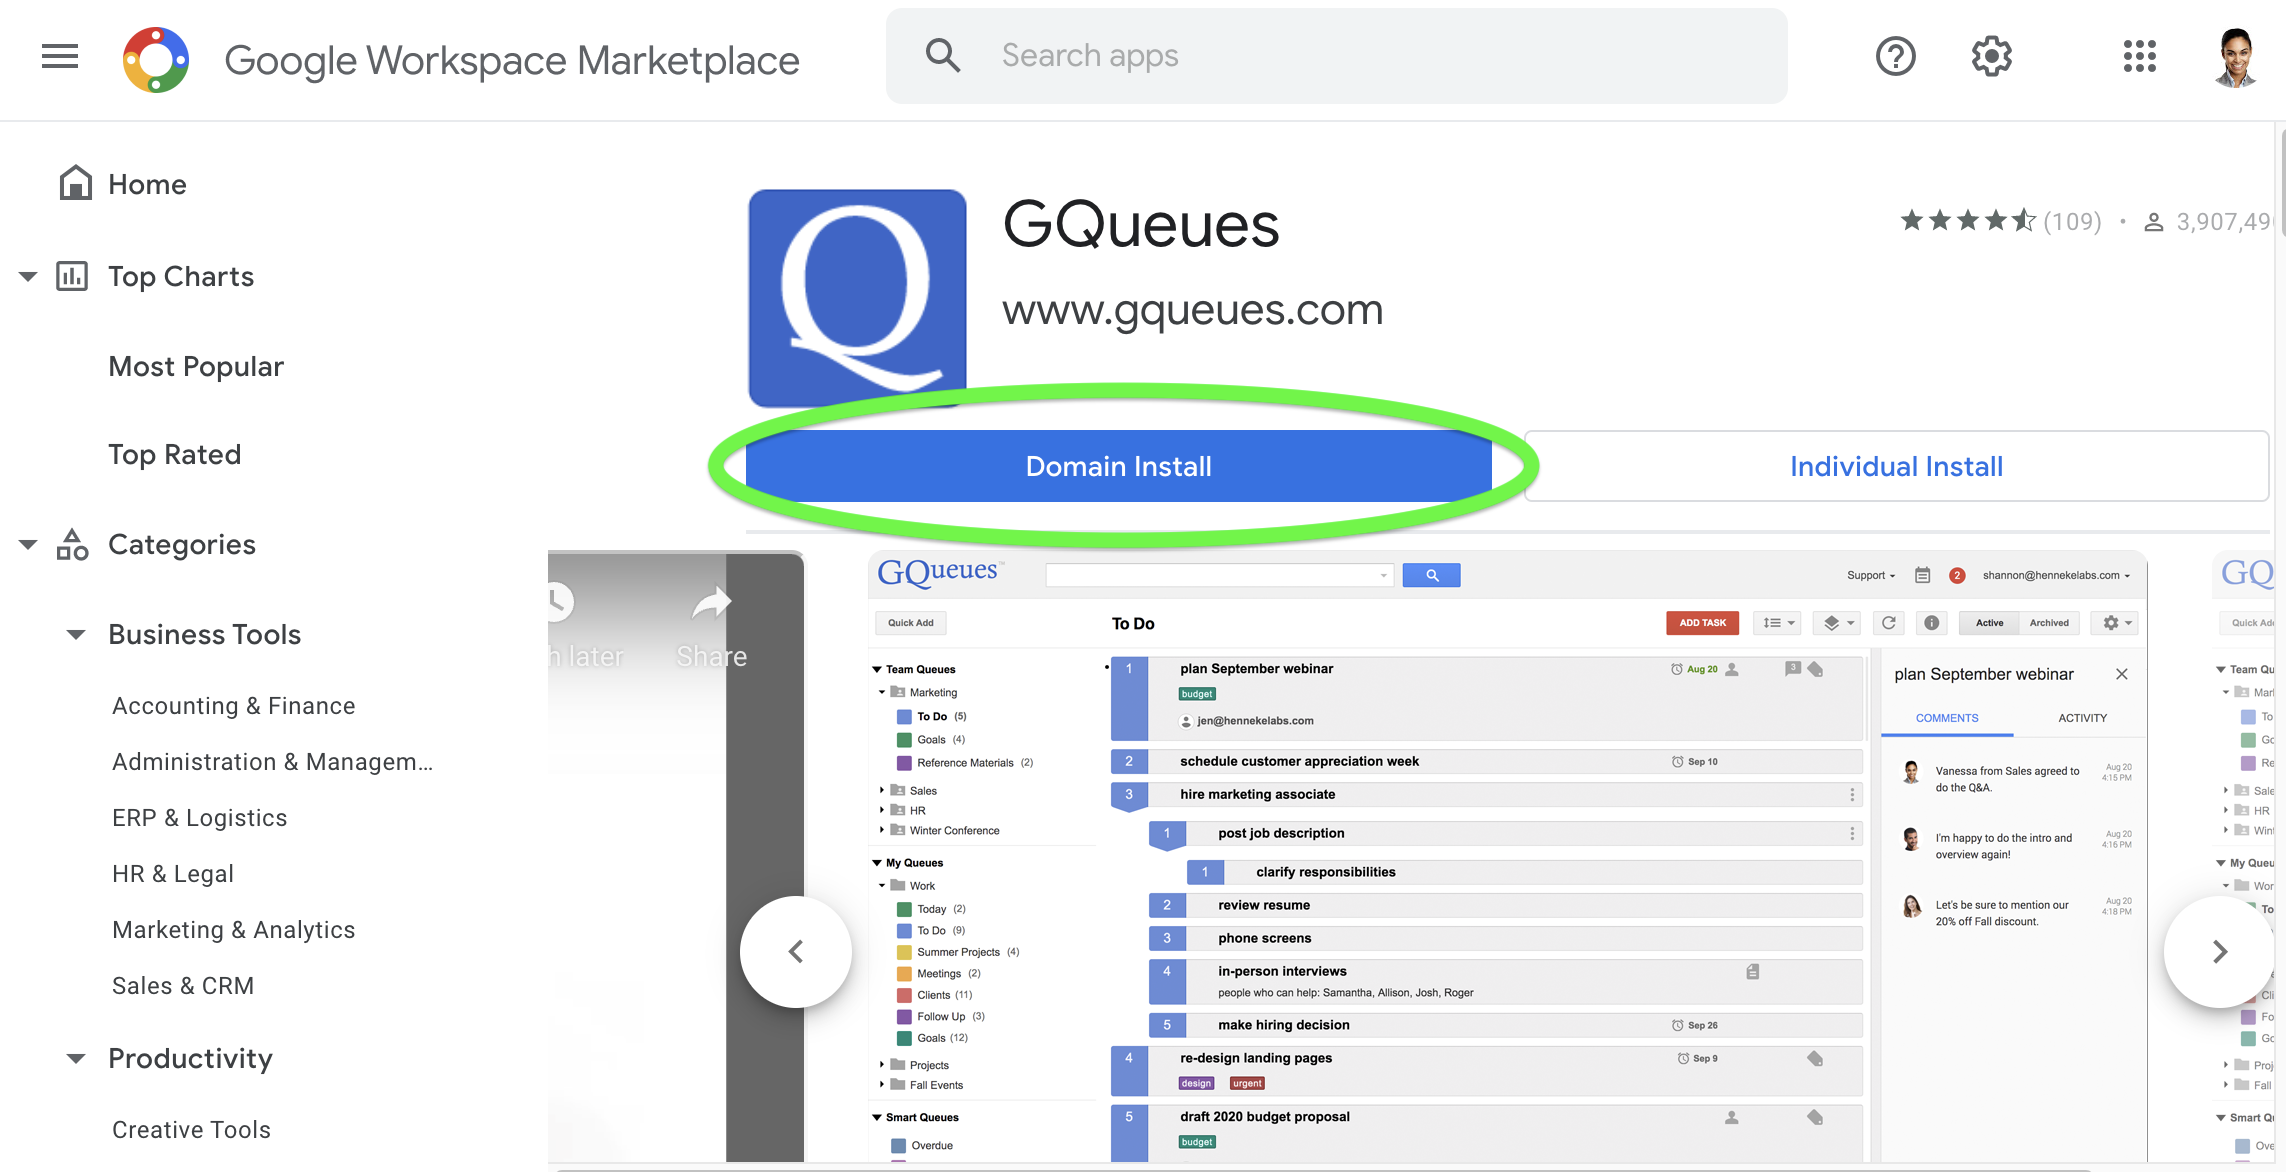 Select Domain Install to install GQueues on your whole domain